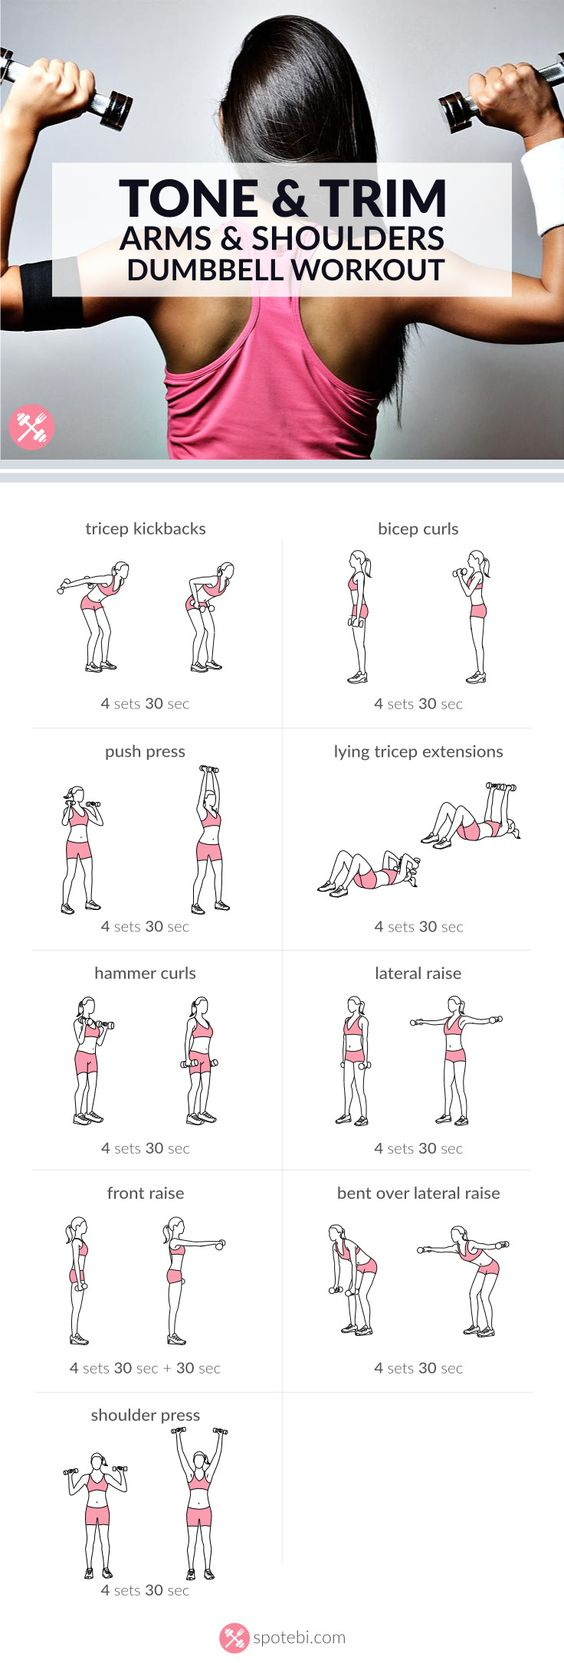 Spotebi Shoulder Workout